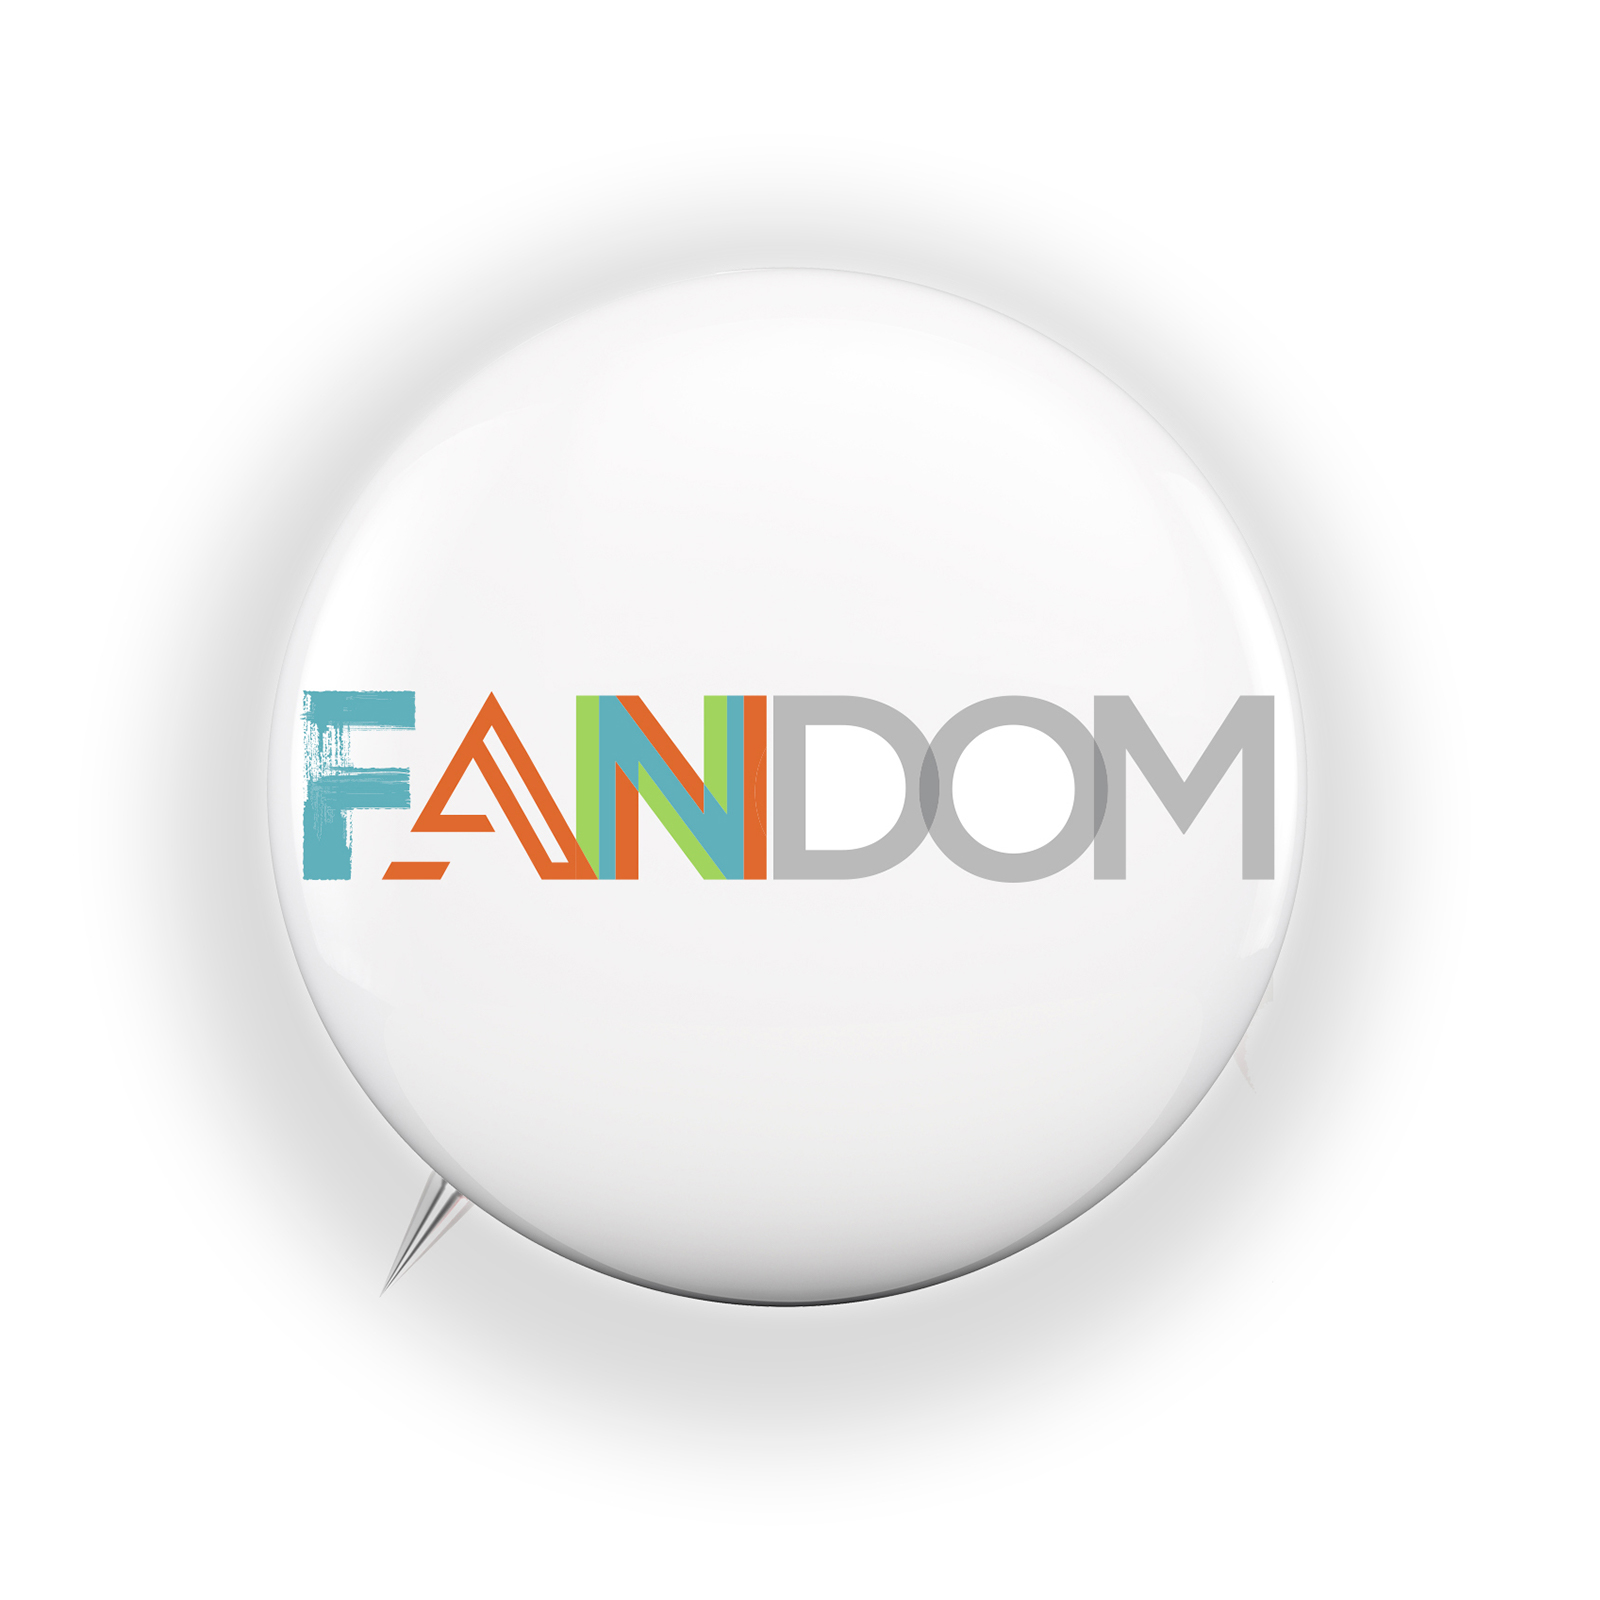 'Fandom,' is a word used to describe camaraderie amongst individuals who share a common interest.